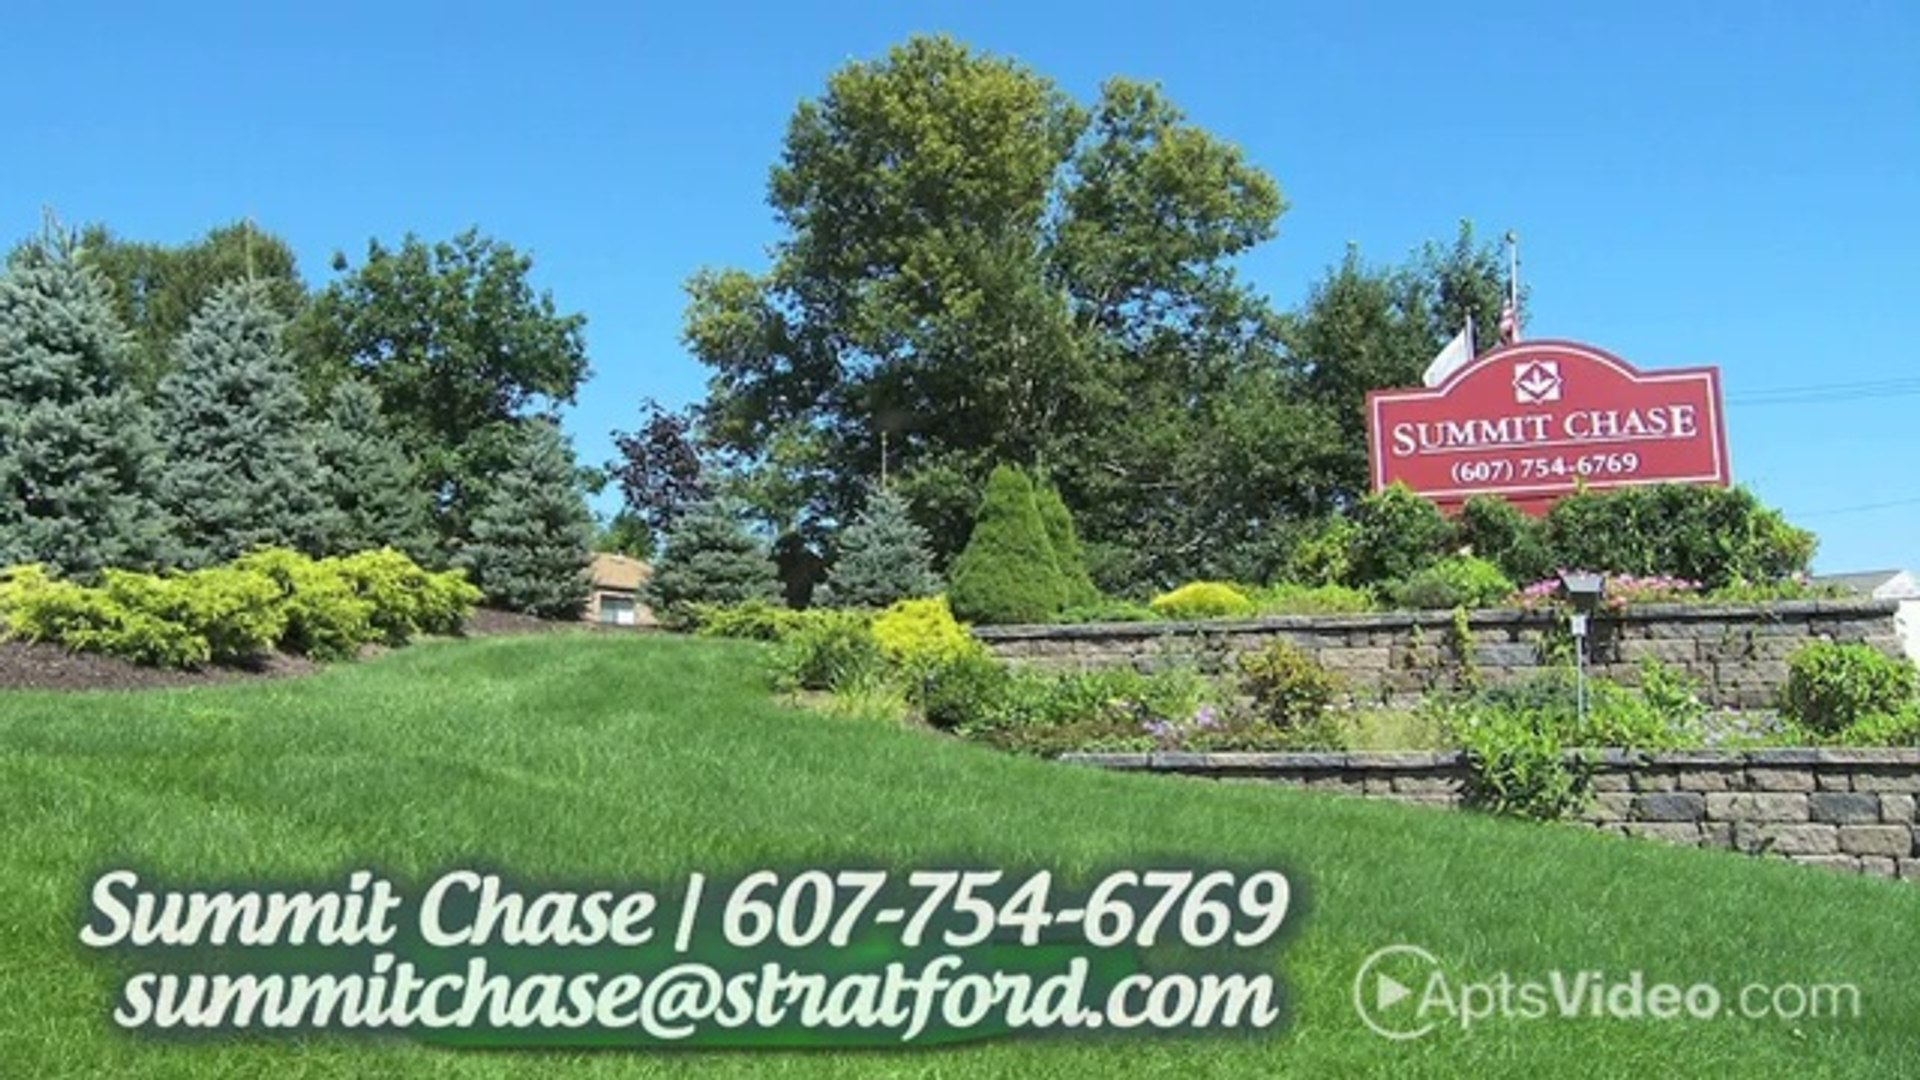 Summit Chase Apartments In Endicott Ny Forrent Com Video Dailymotion